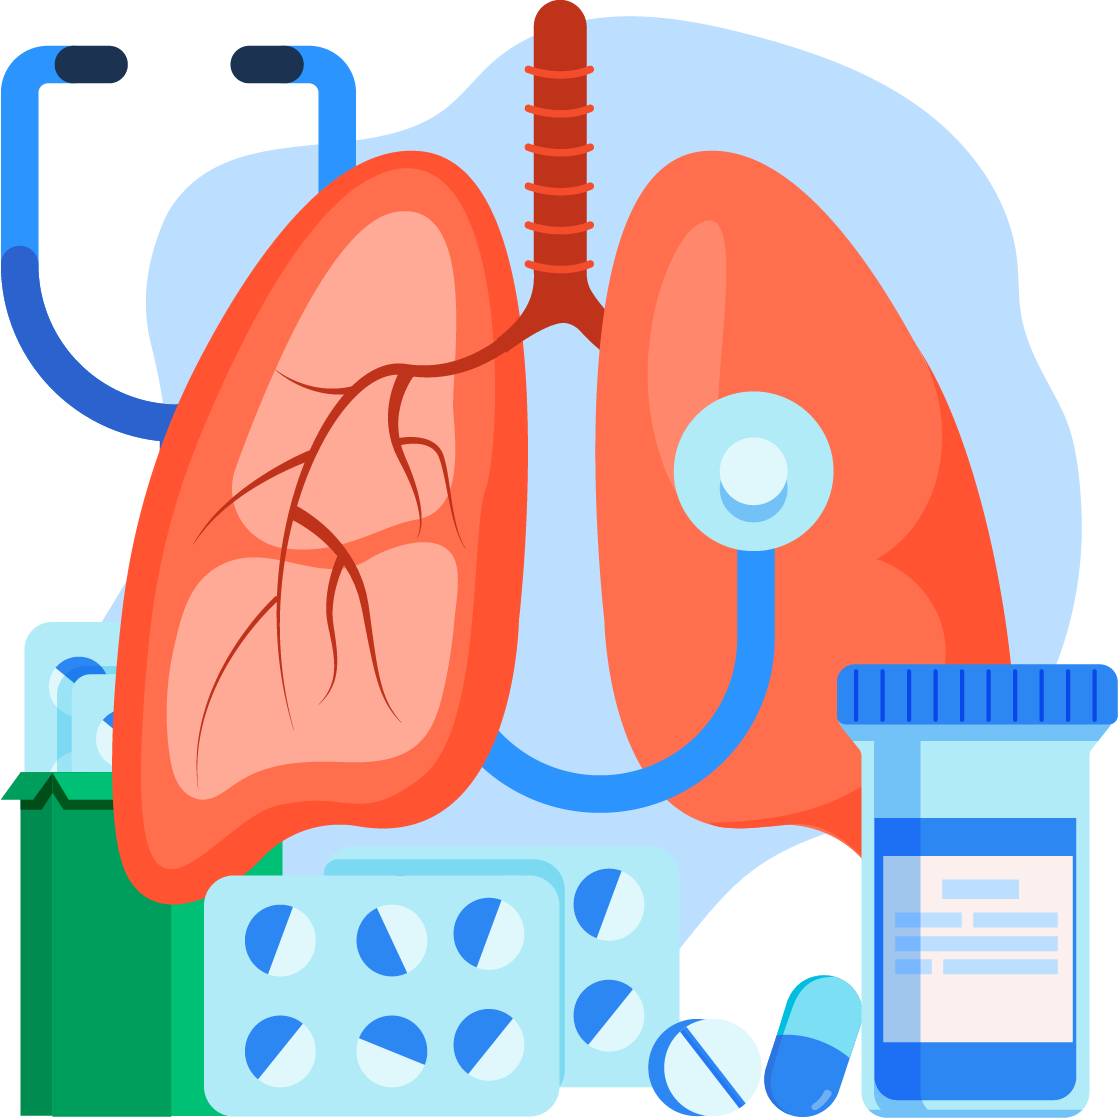 Think you might have COPD?